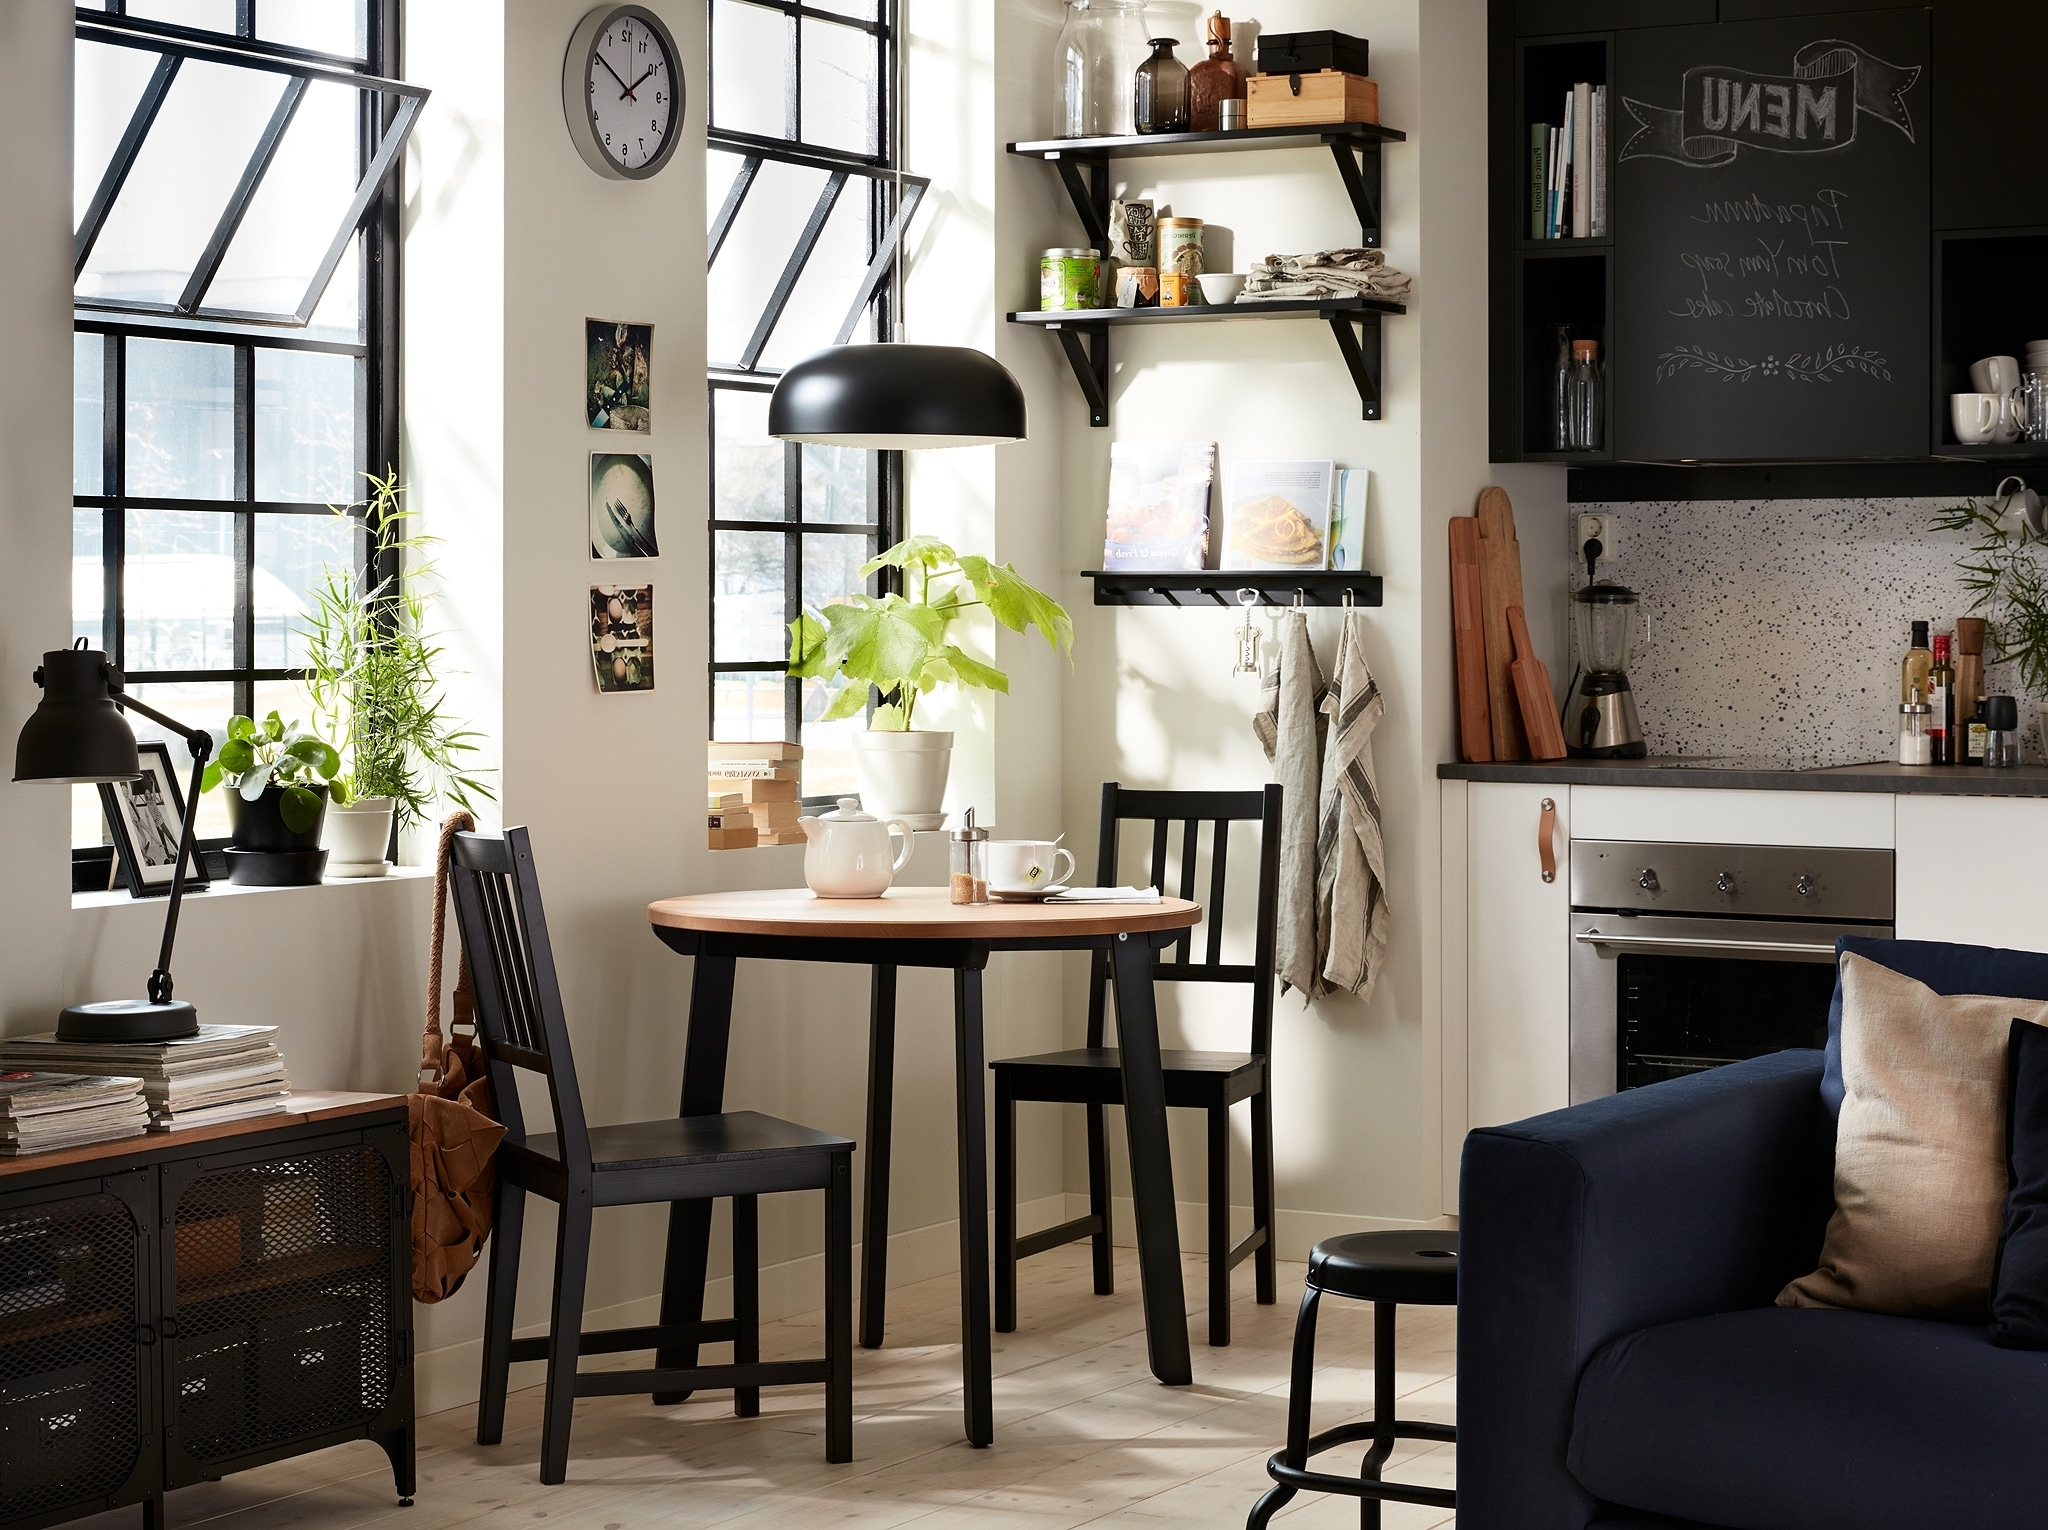 Dining Room Furniture & Ideas (View 17 of 25)